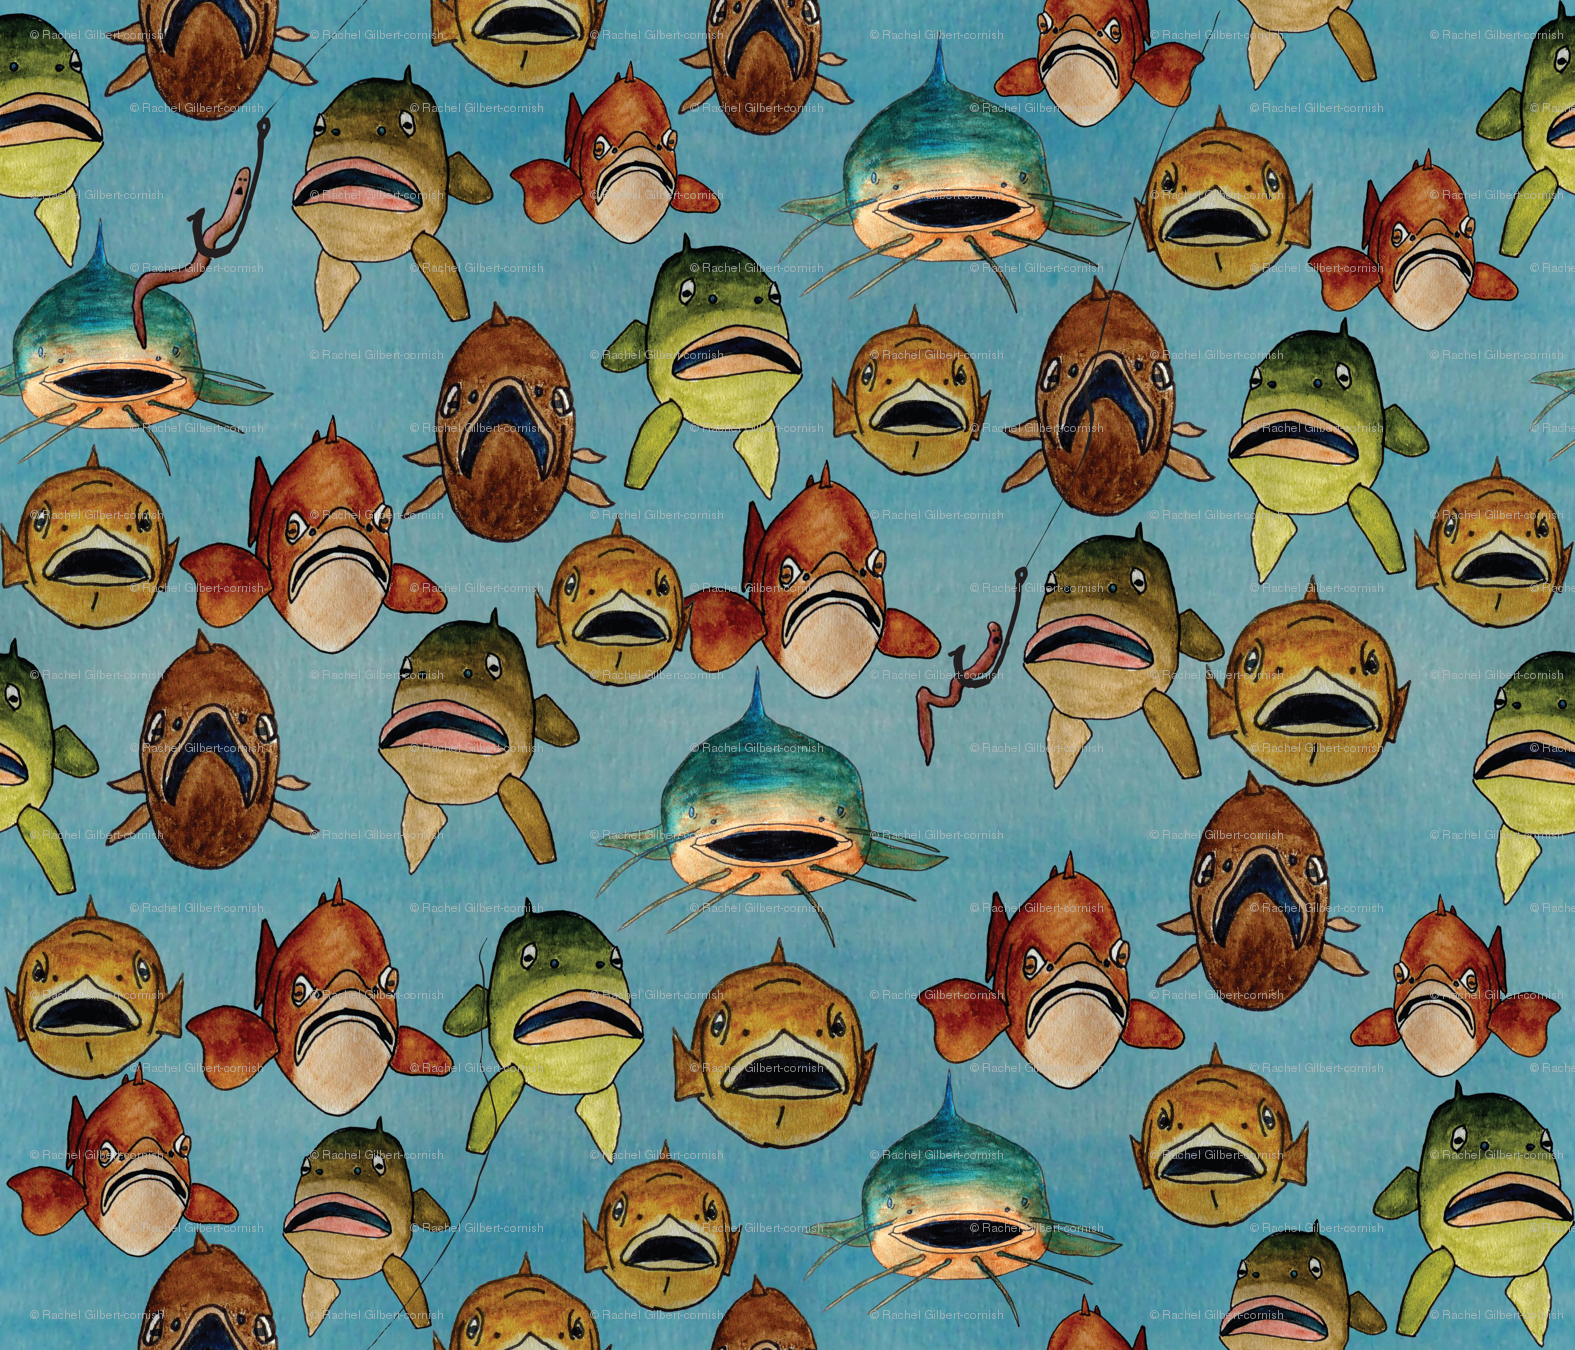 fishing with worms wallpaper   babysisterrae   Spoonflower 1575x1350